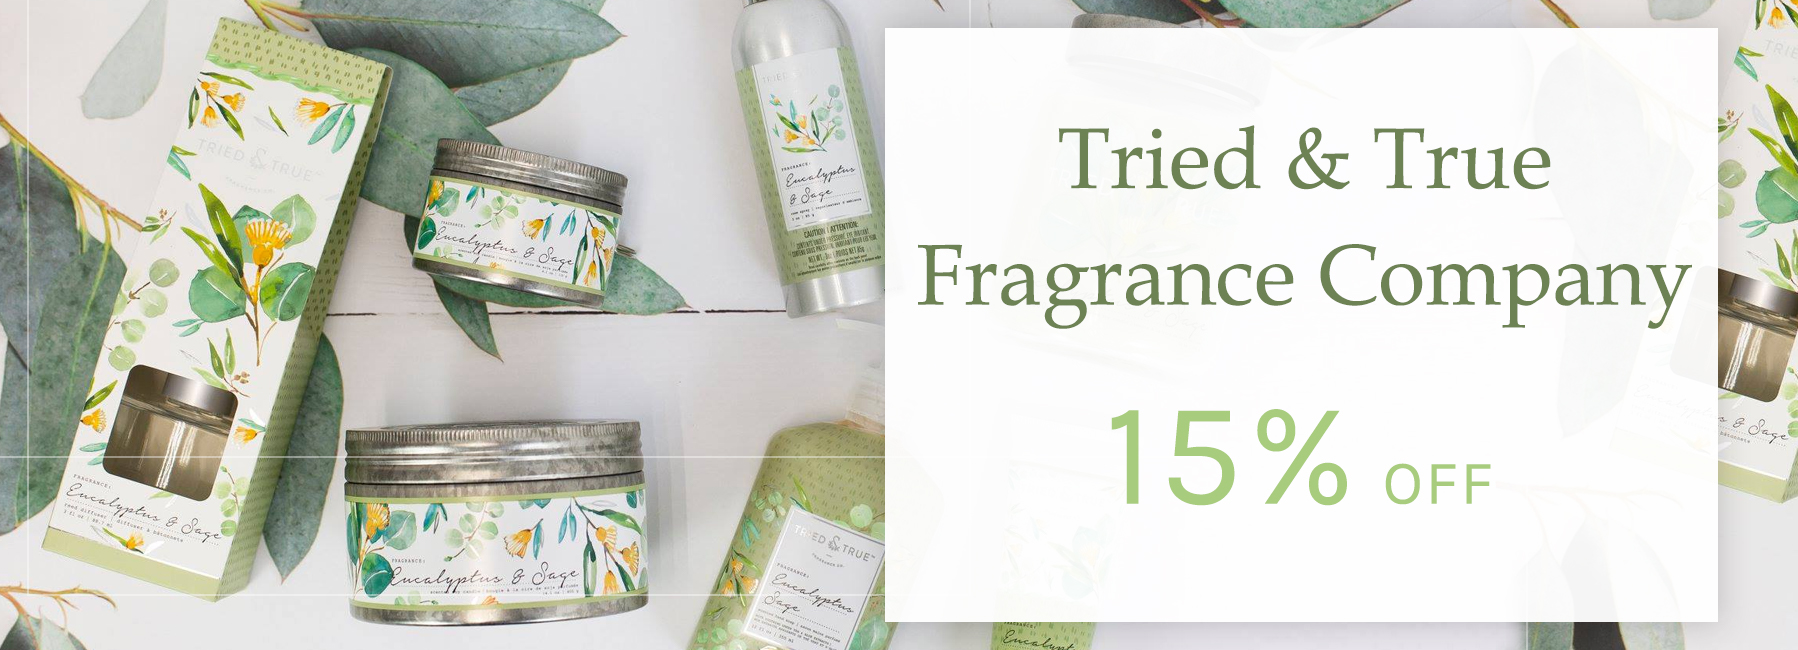 Tried and True Fragrance Company - 15 Percent OFF